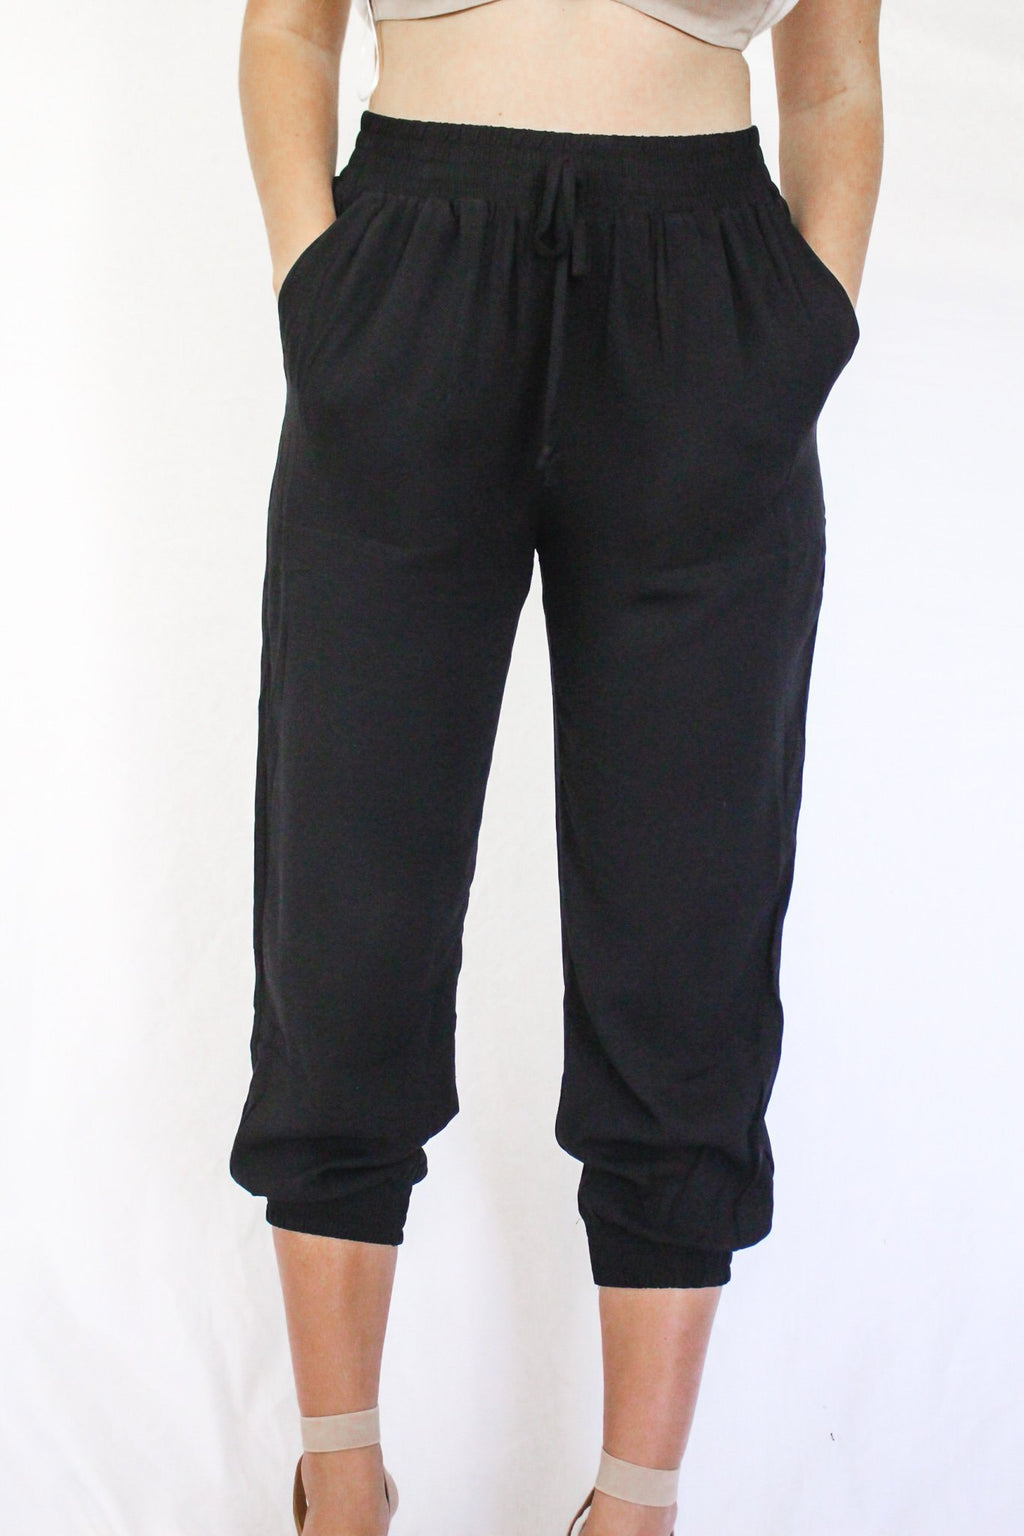 One Time Only Jogger Pants Black - Hollie's Boutique